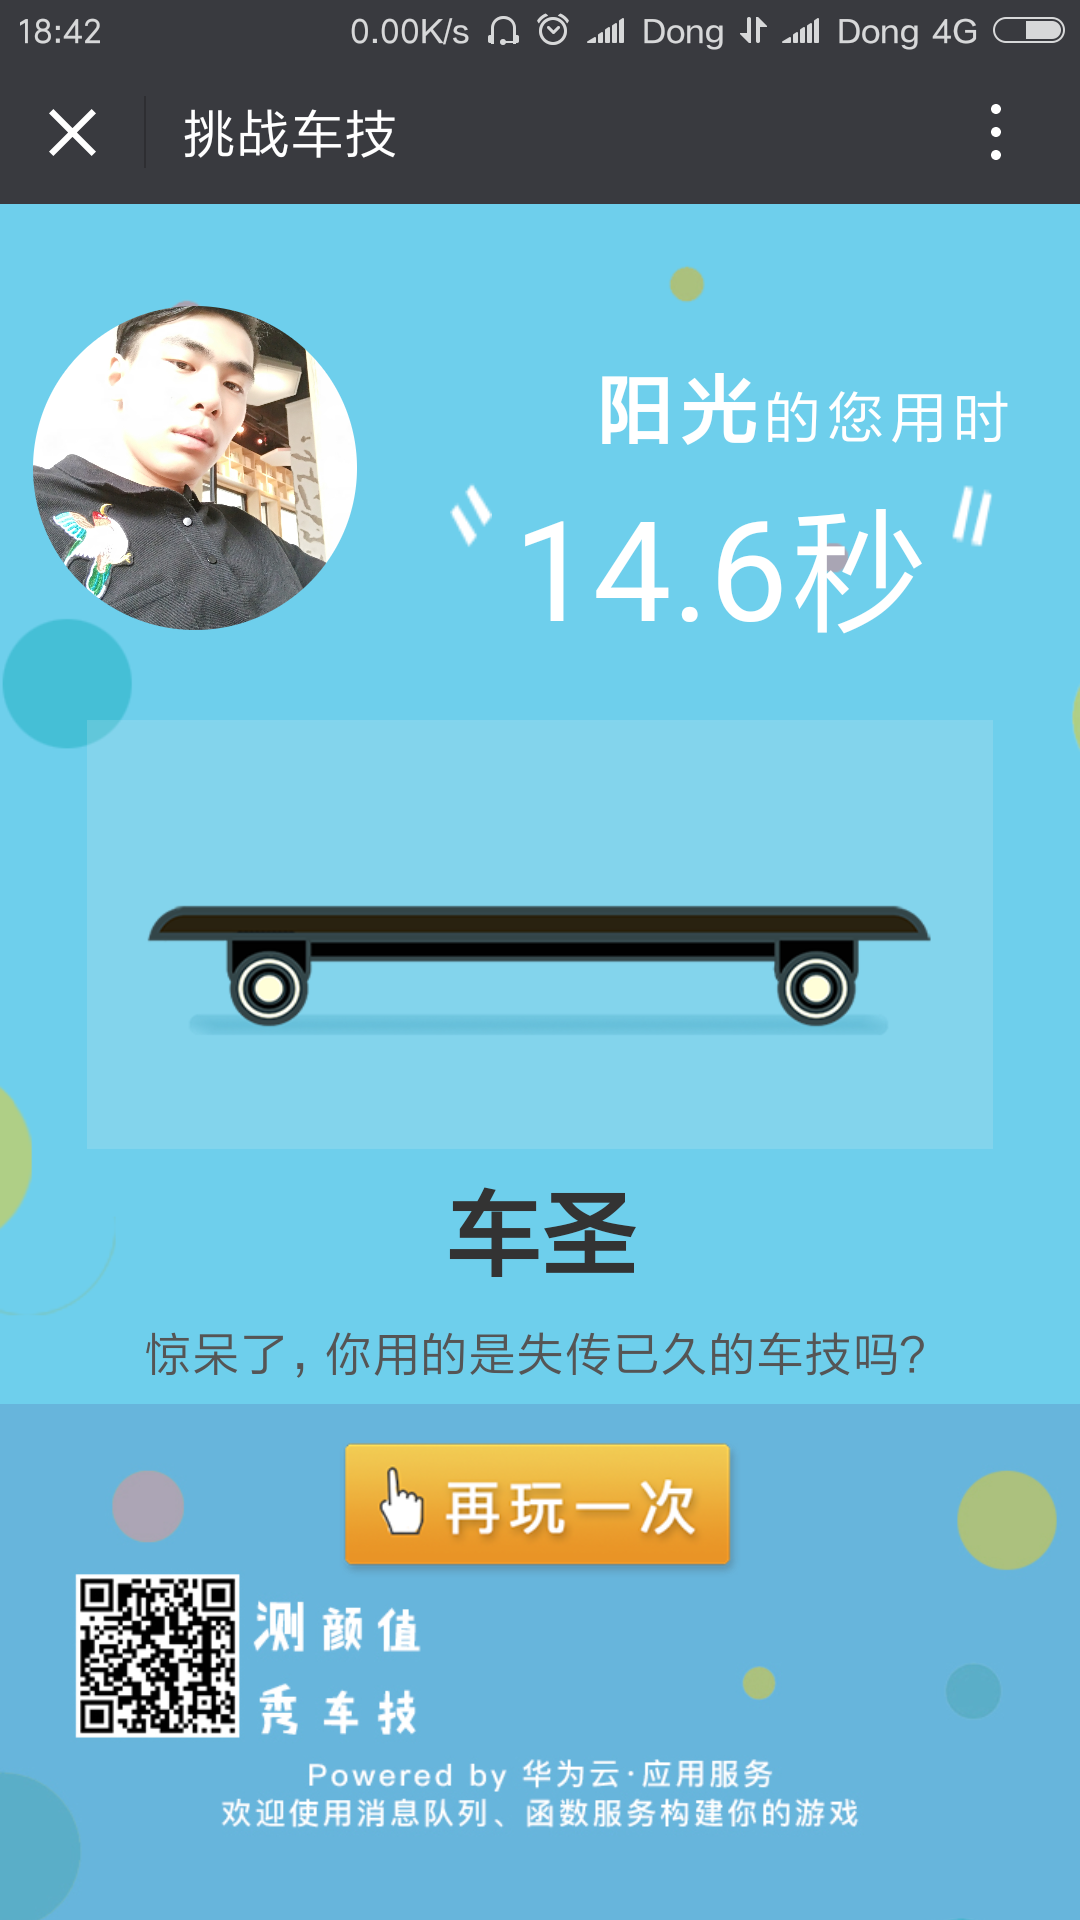 Screenshot_2018-05-03-18-42-00-954_com.tencent.mm.png